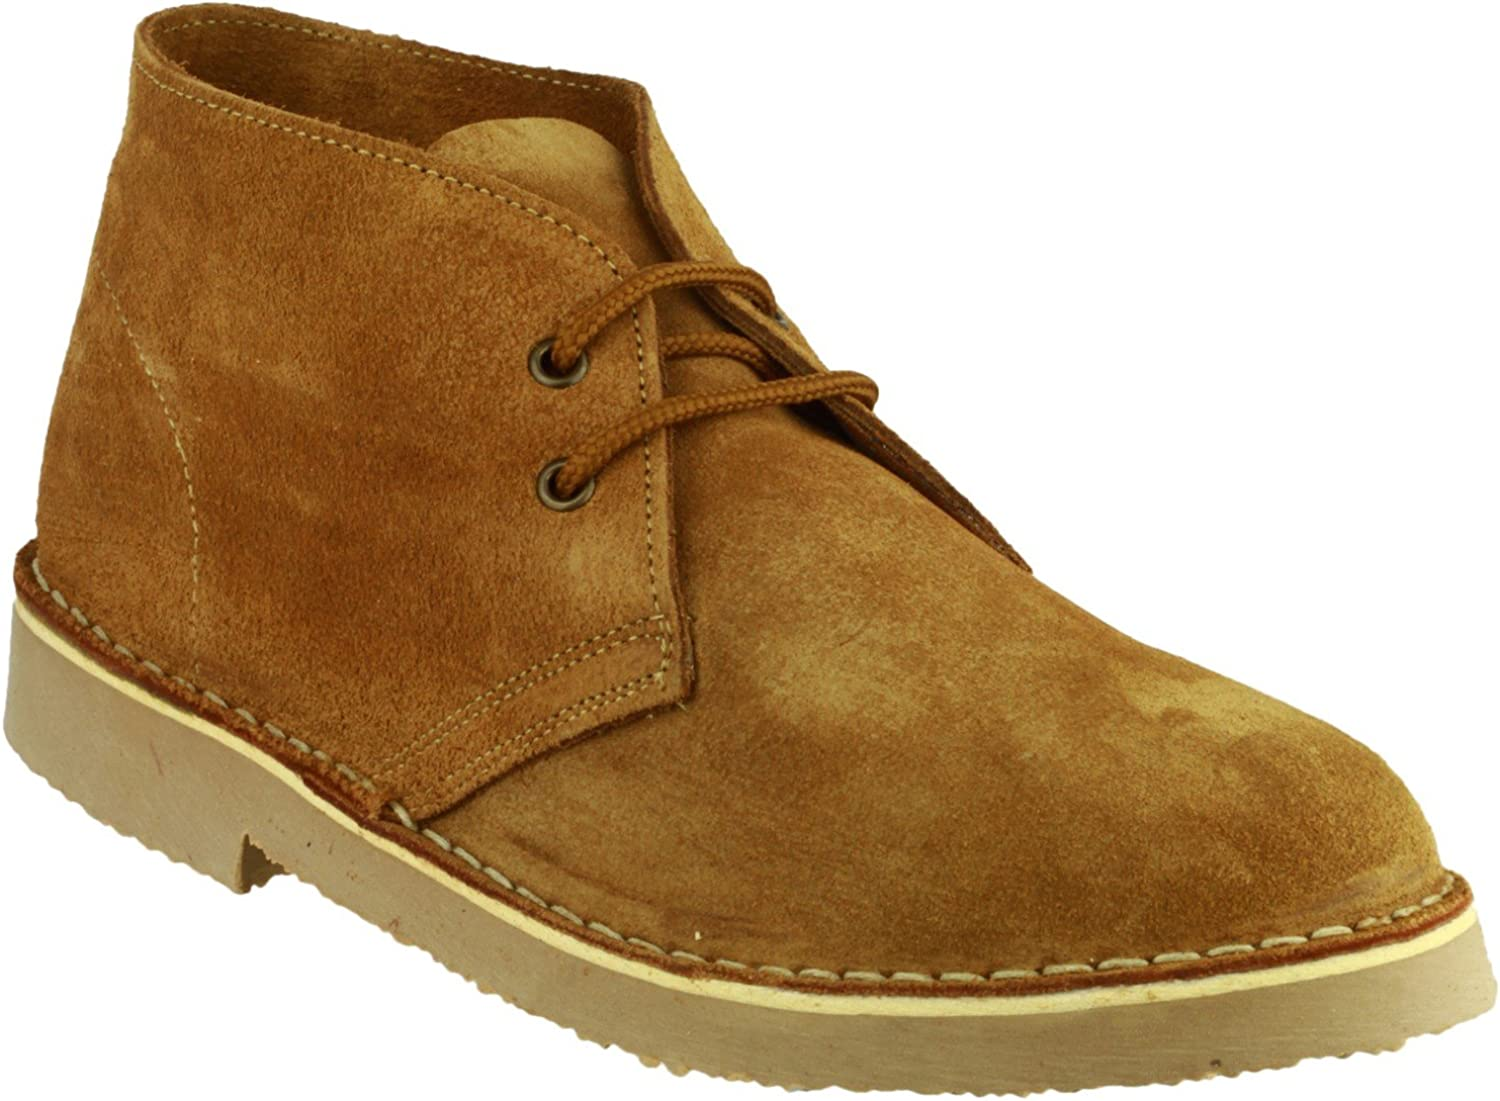 Cotswold Mens Sahara Suede Leather Casual Supported Heel Desert Stiefel